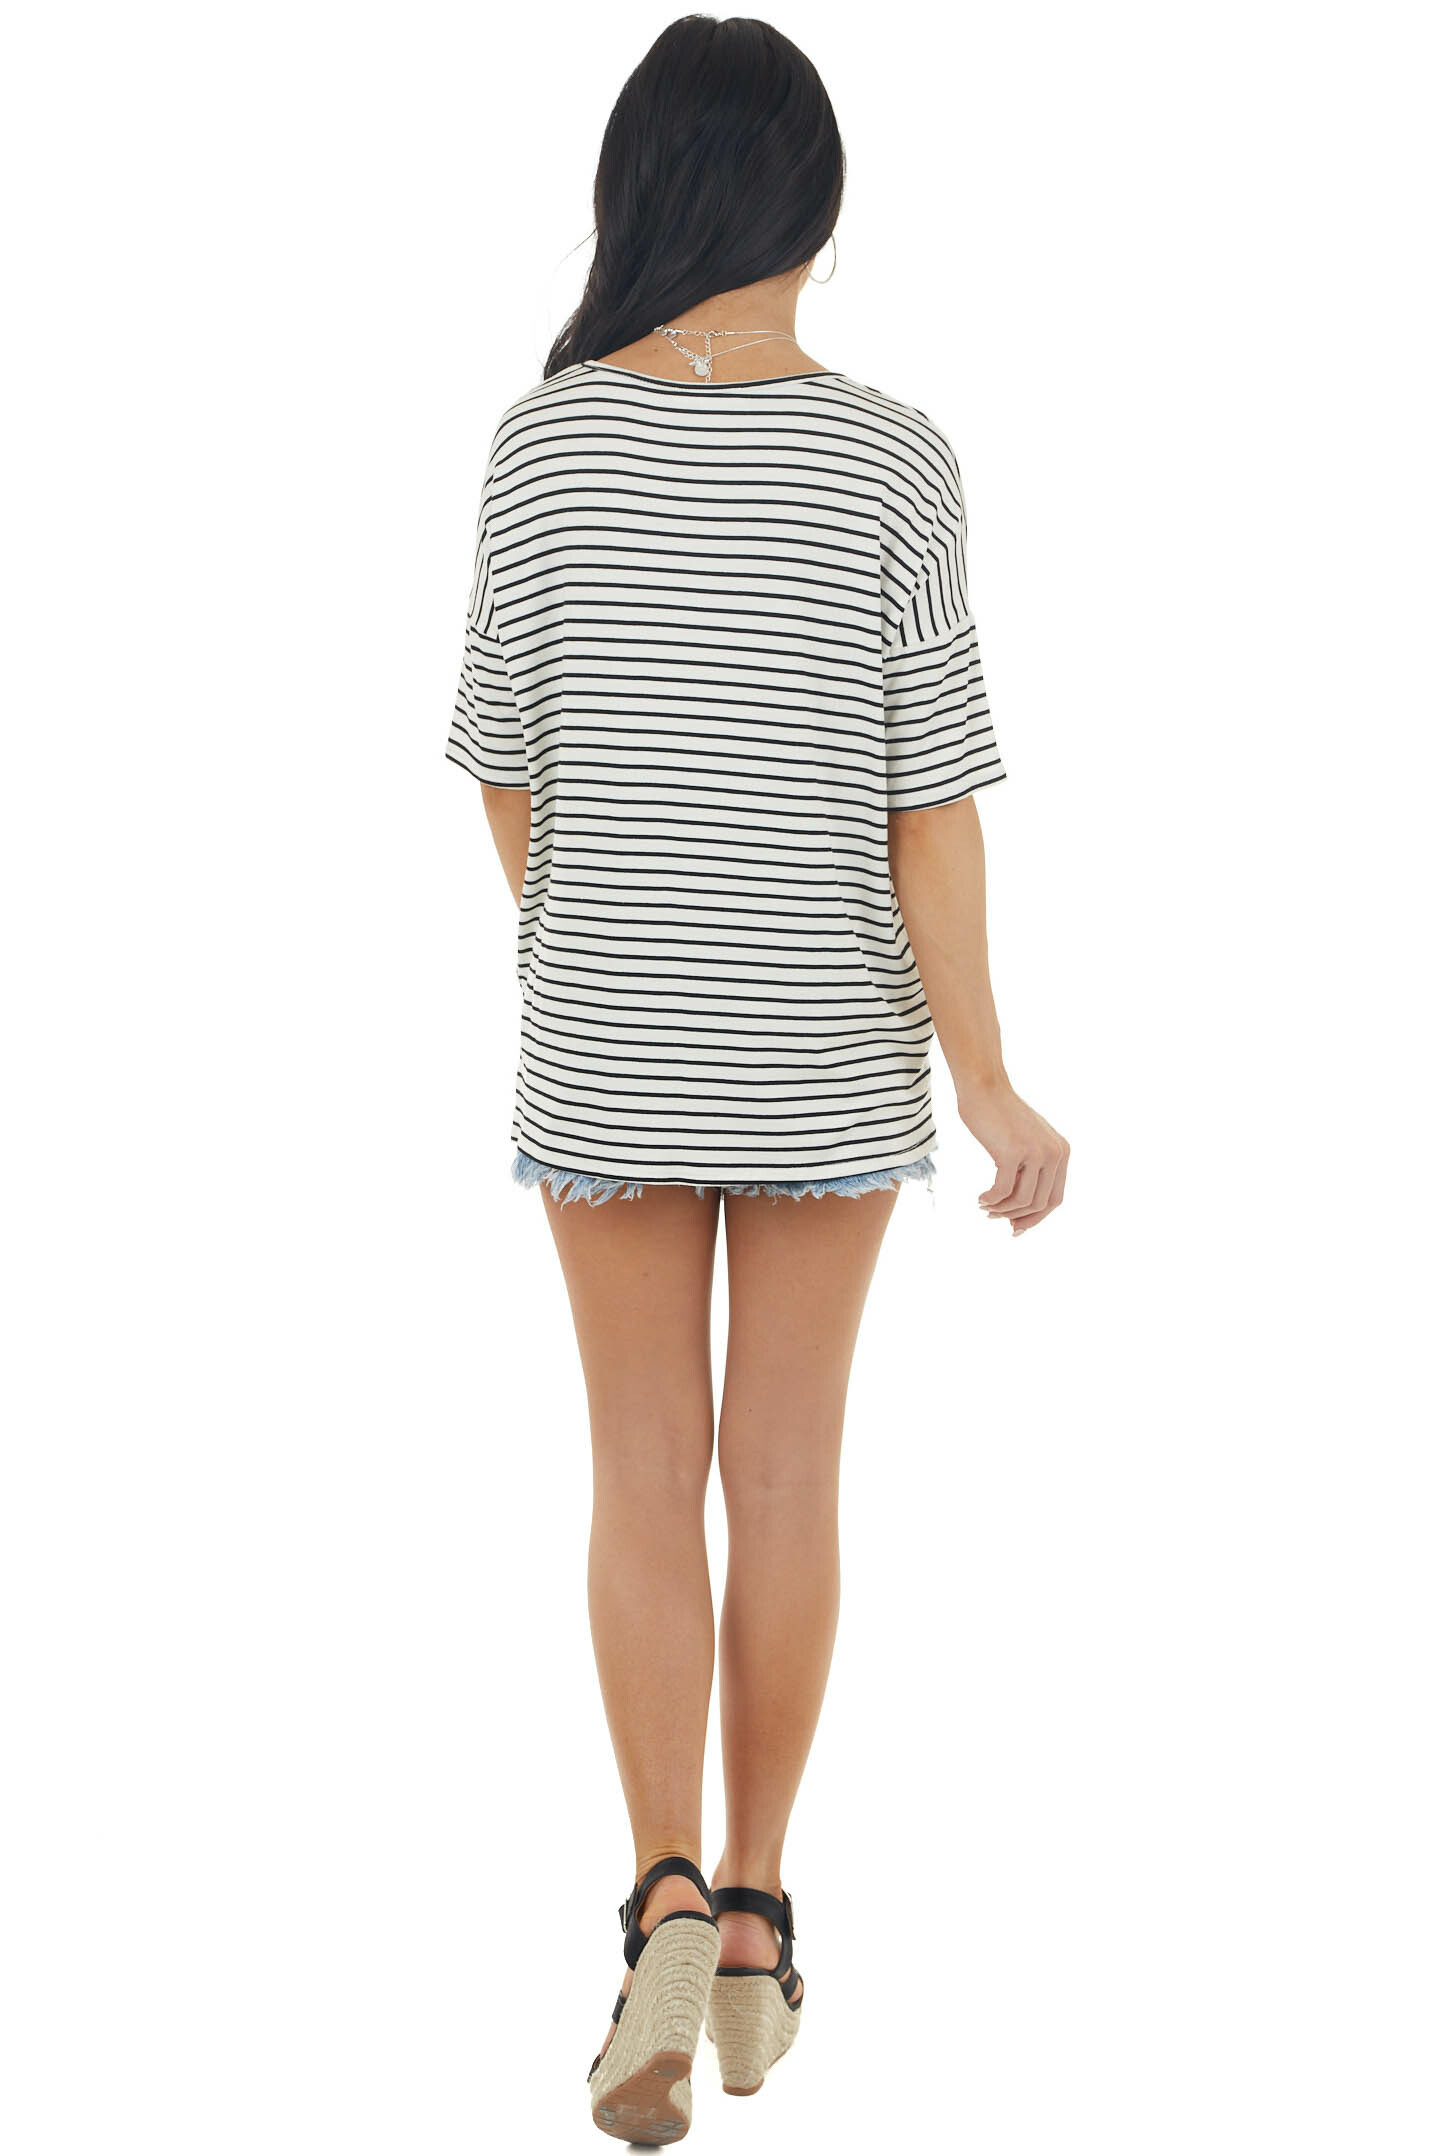 Ivory and Black Striped Print Short Sleeve Knit Top